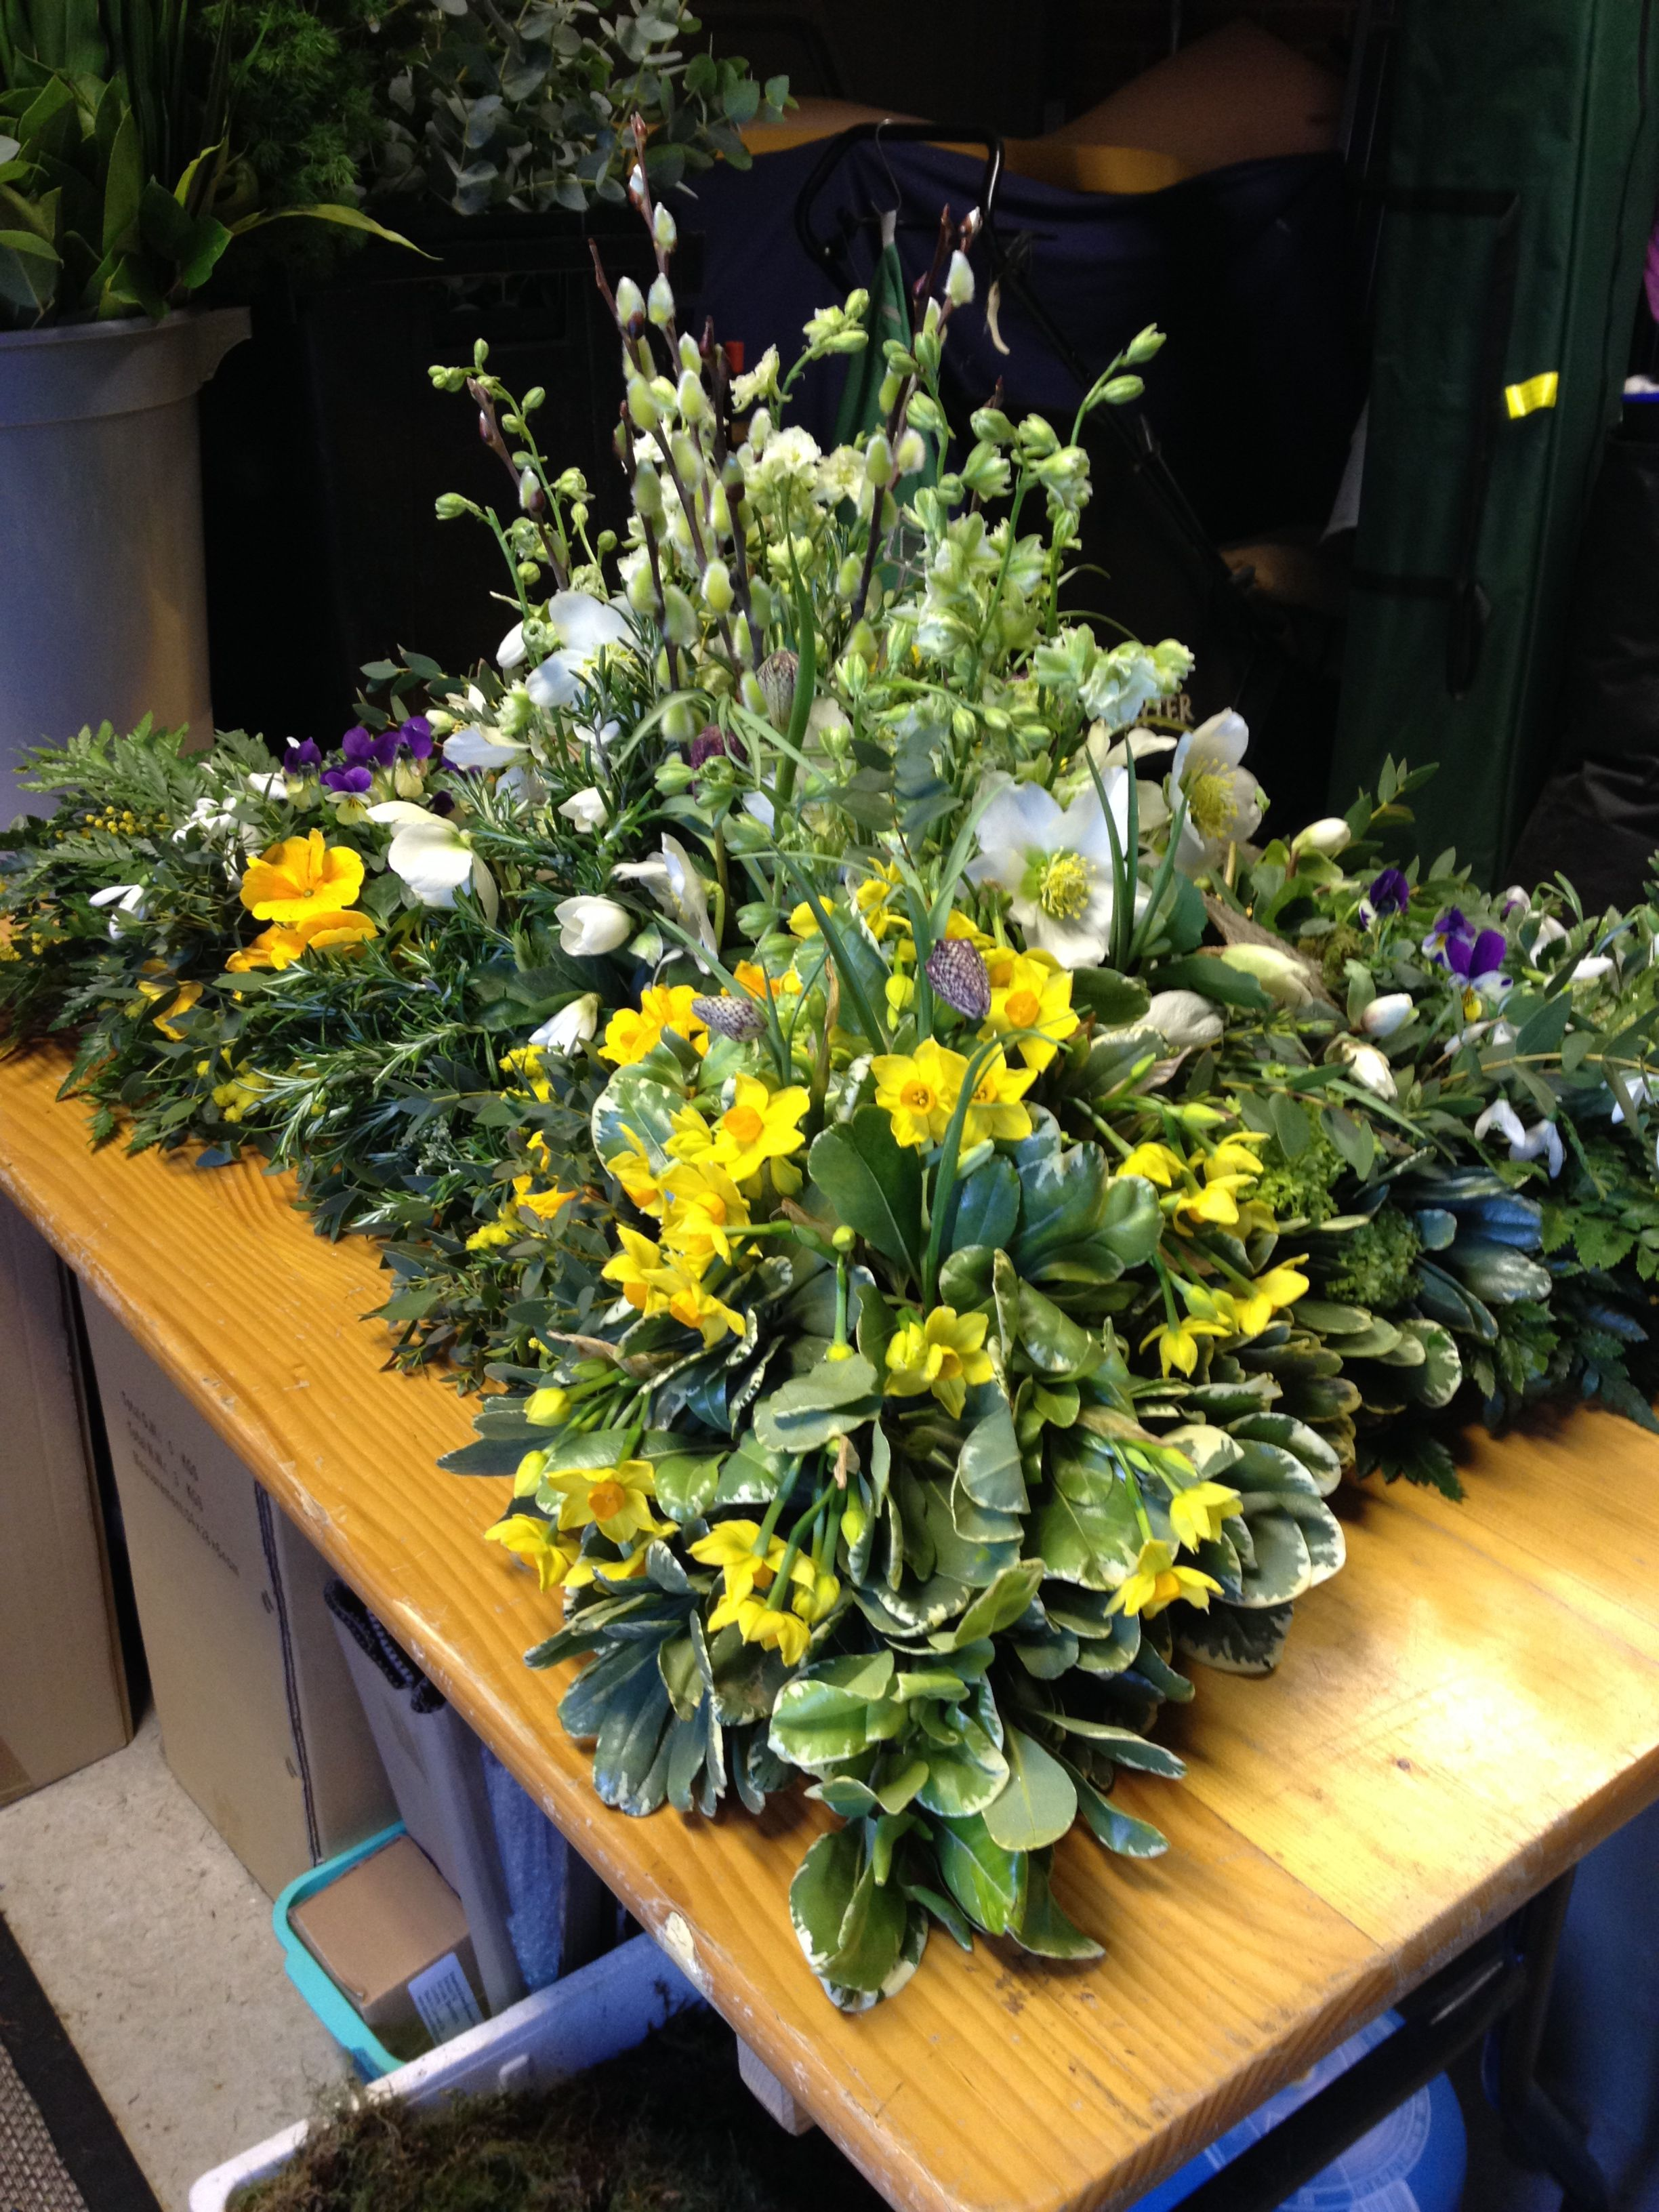 Garden inspired funeral flowers for a loved one by Wendy B